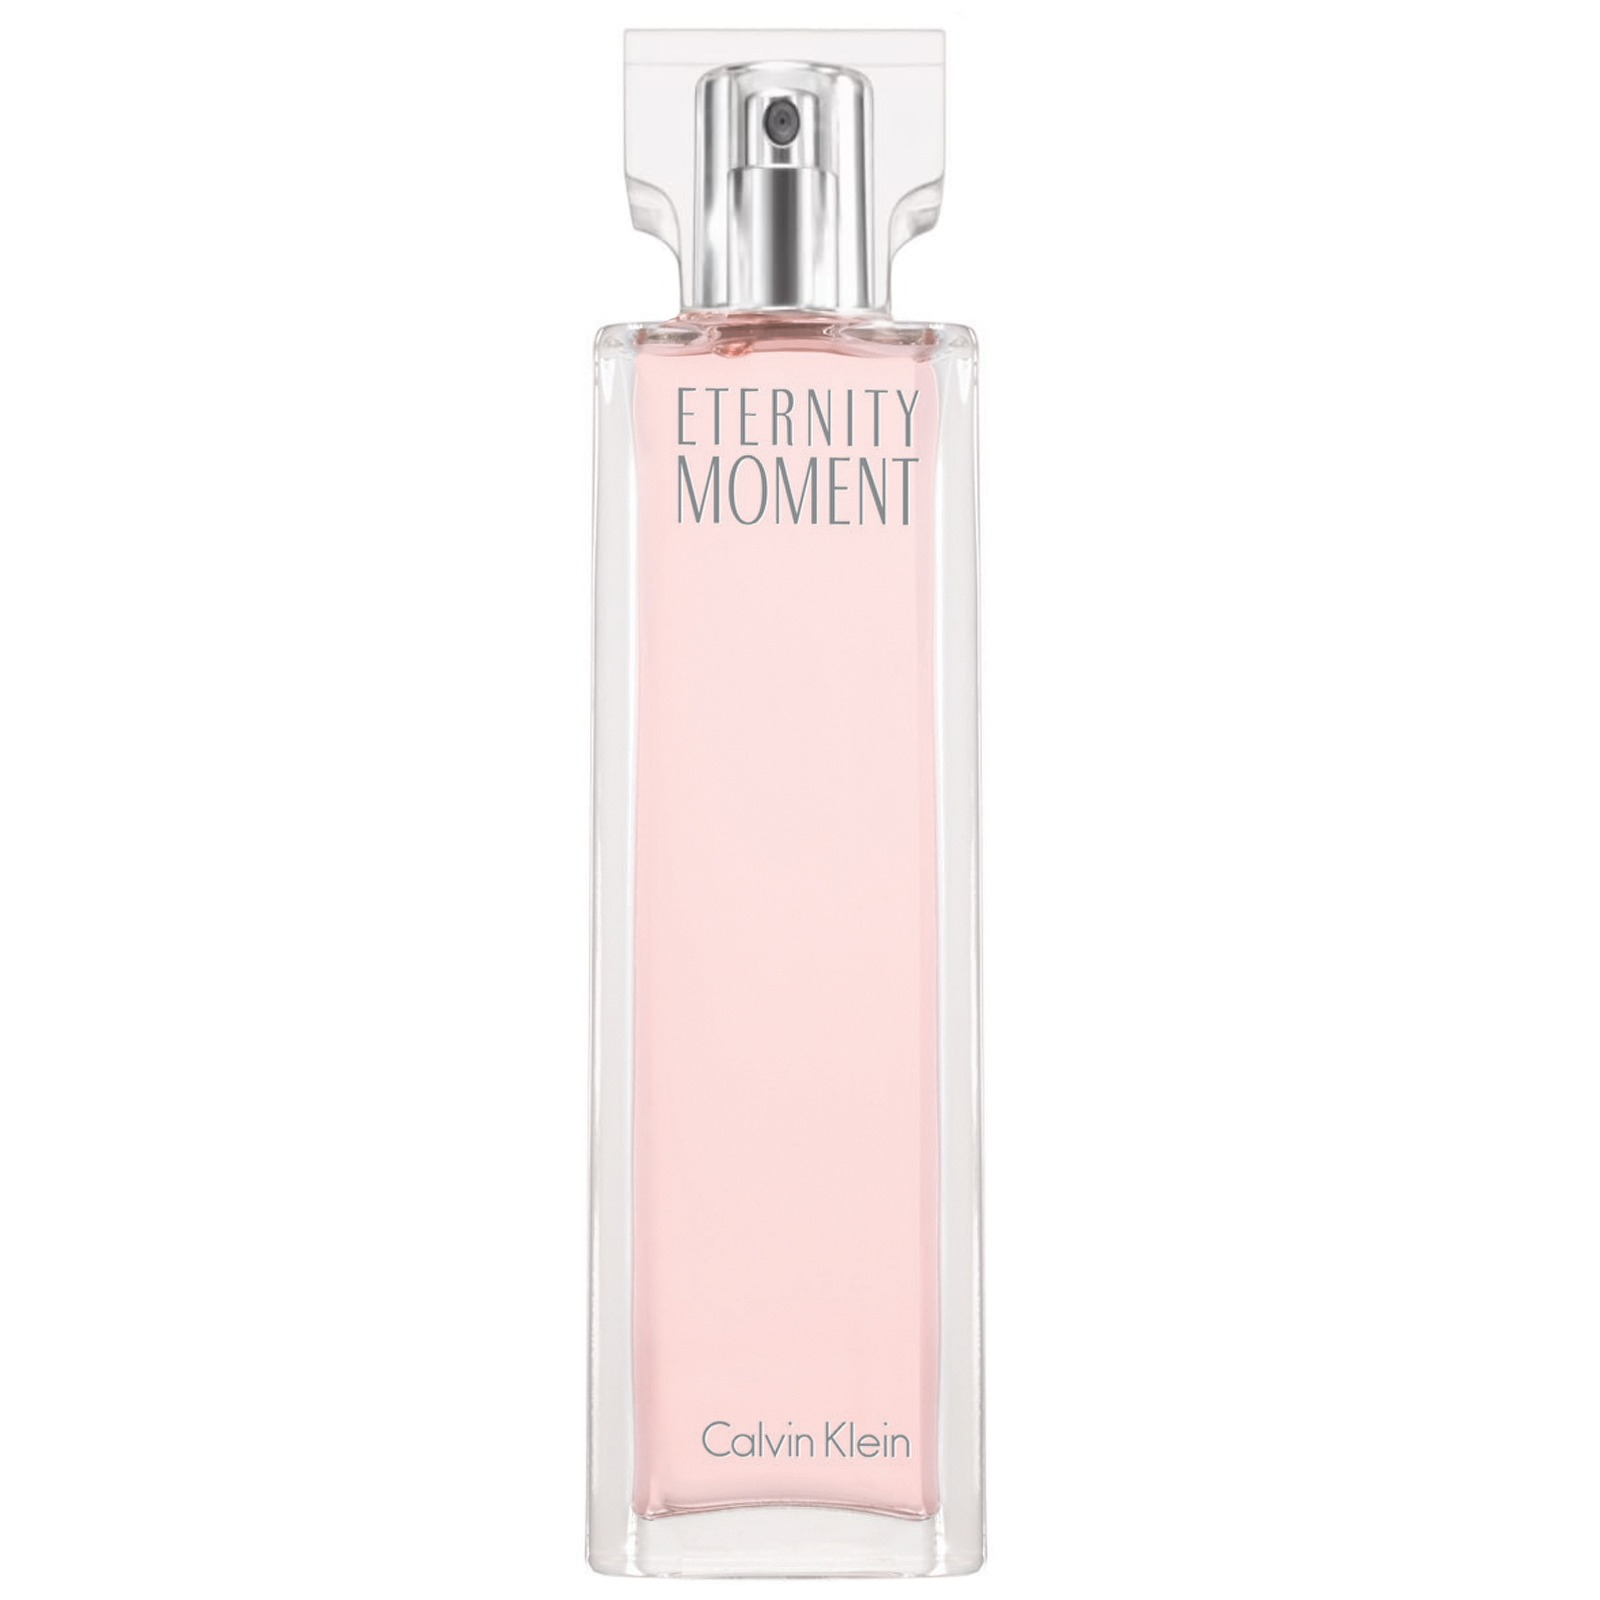 Calvin Klein Eternity Moment Eau De Parfum Spray 100ml